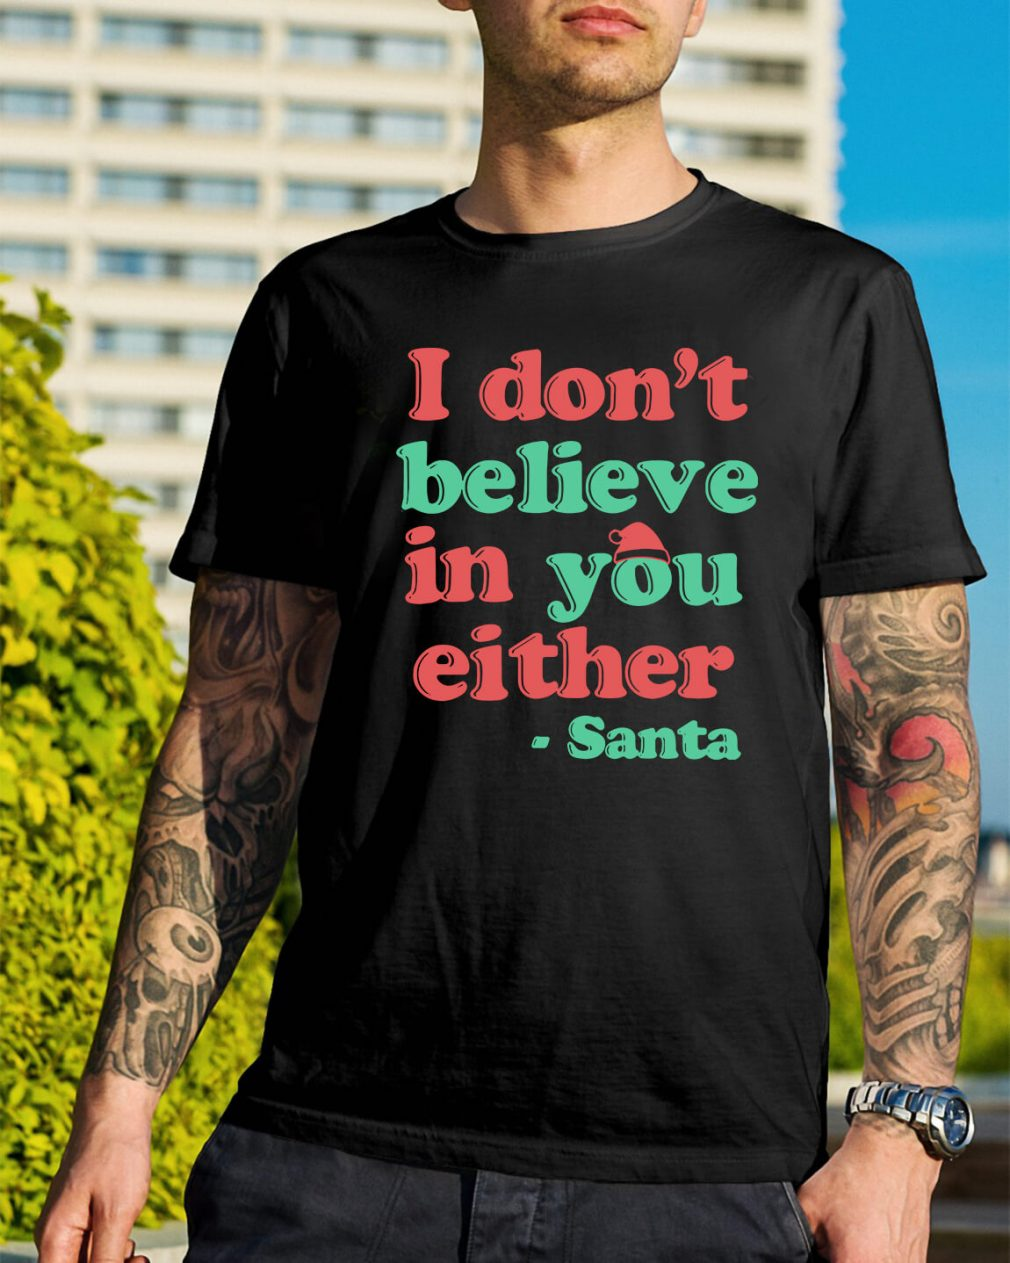 I don't believe in you either Santa shirt